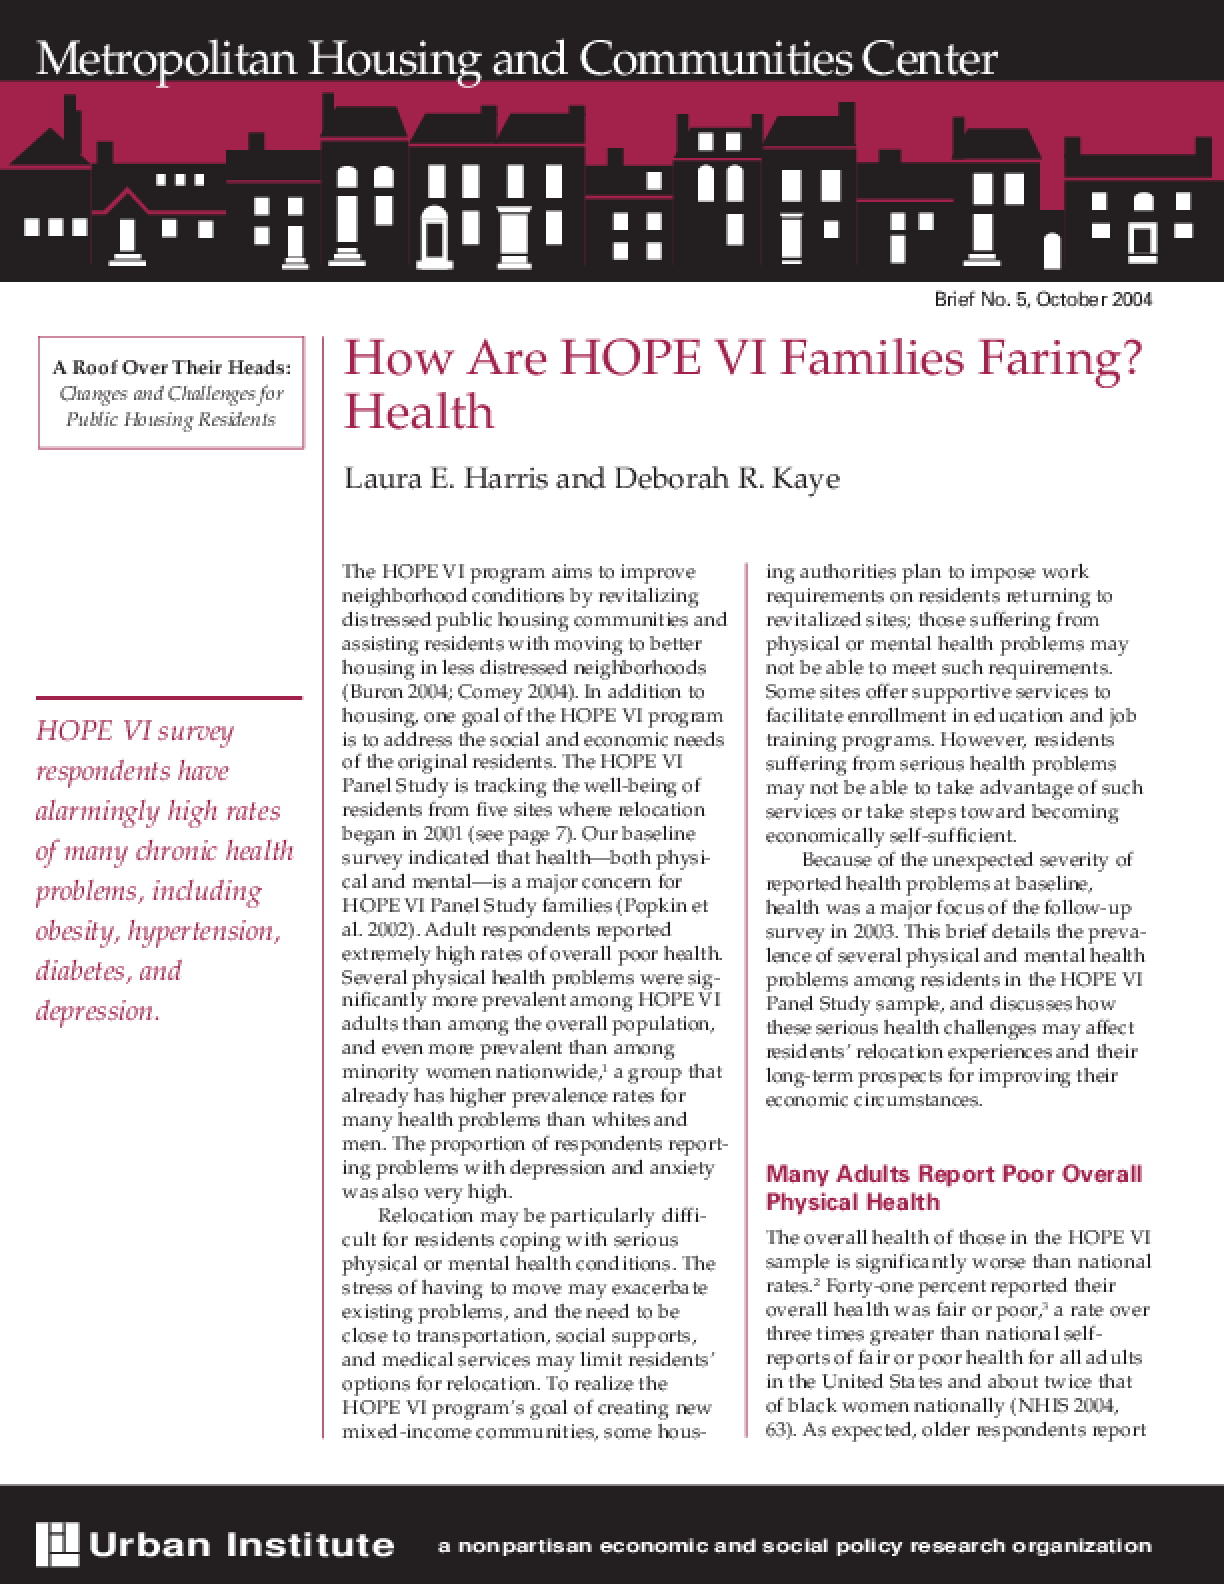 How Are HOPE VI Families Faring? Health